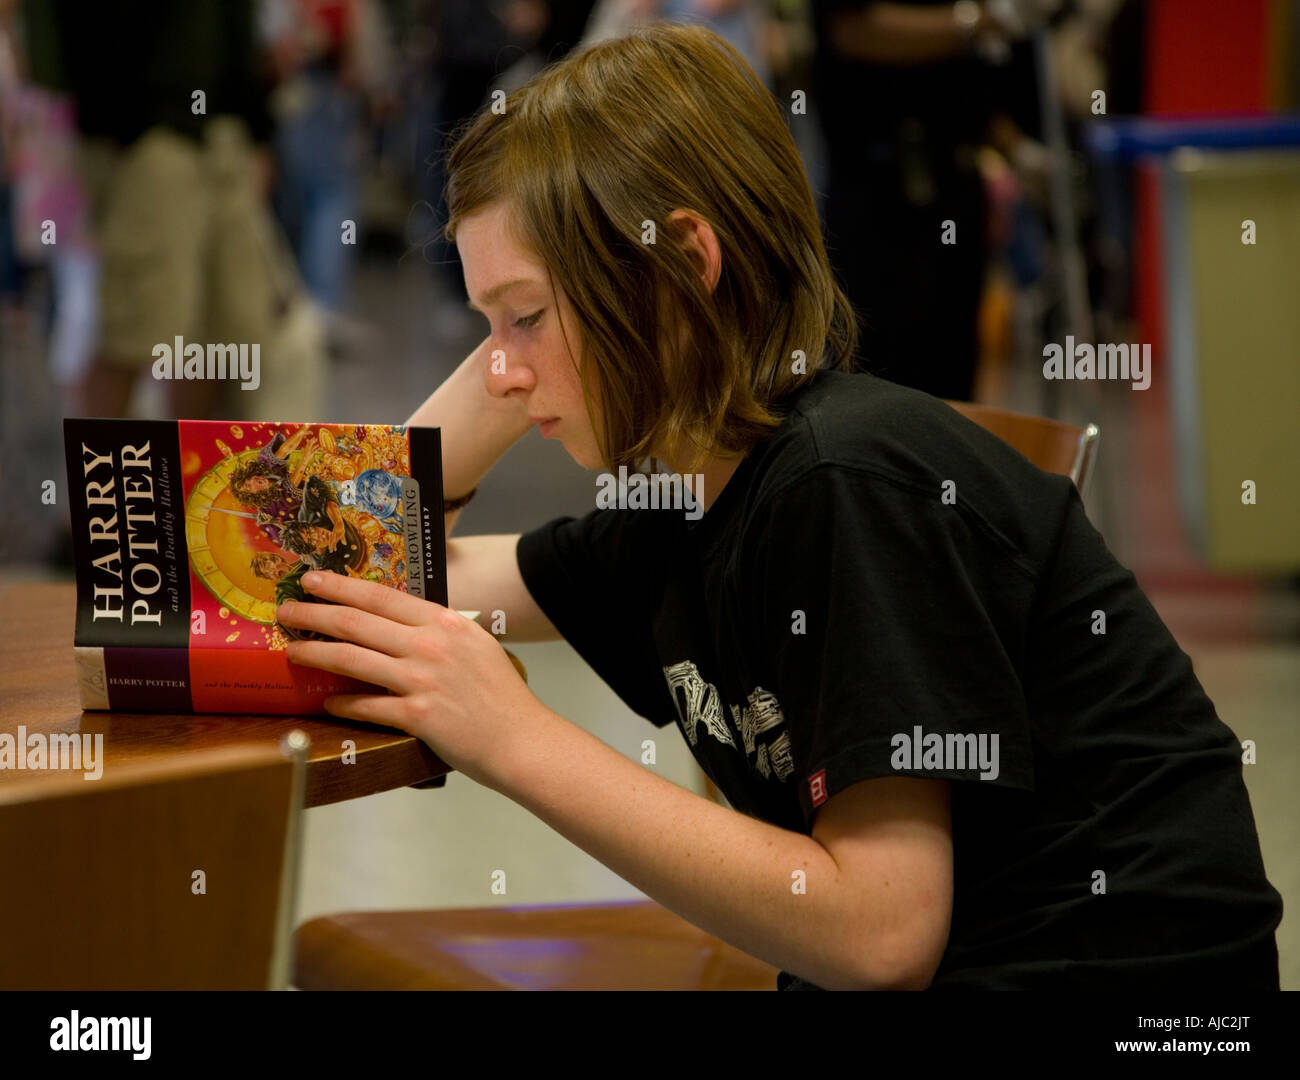 child seated at table reading j k rowlings harry potter and the deathly hallows - Stock Image